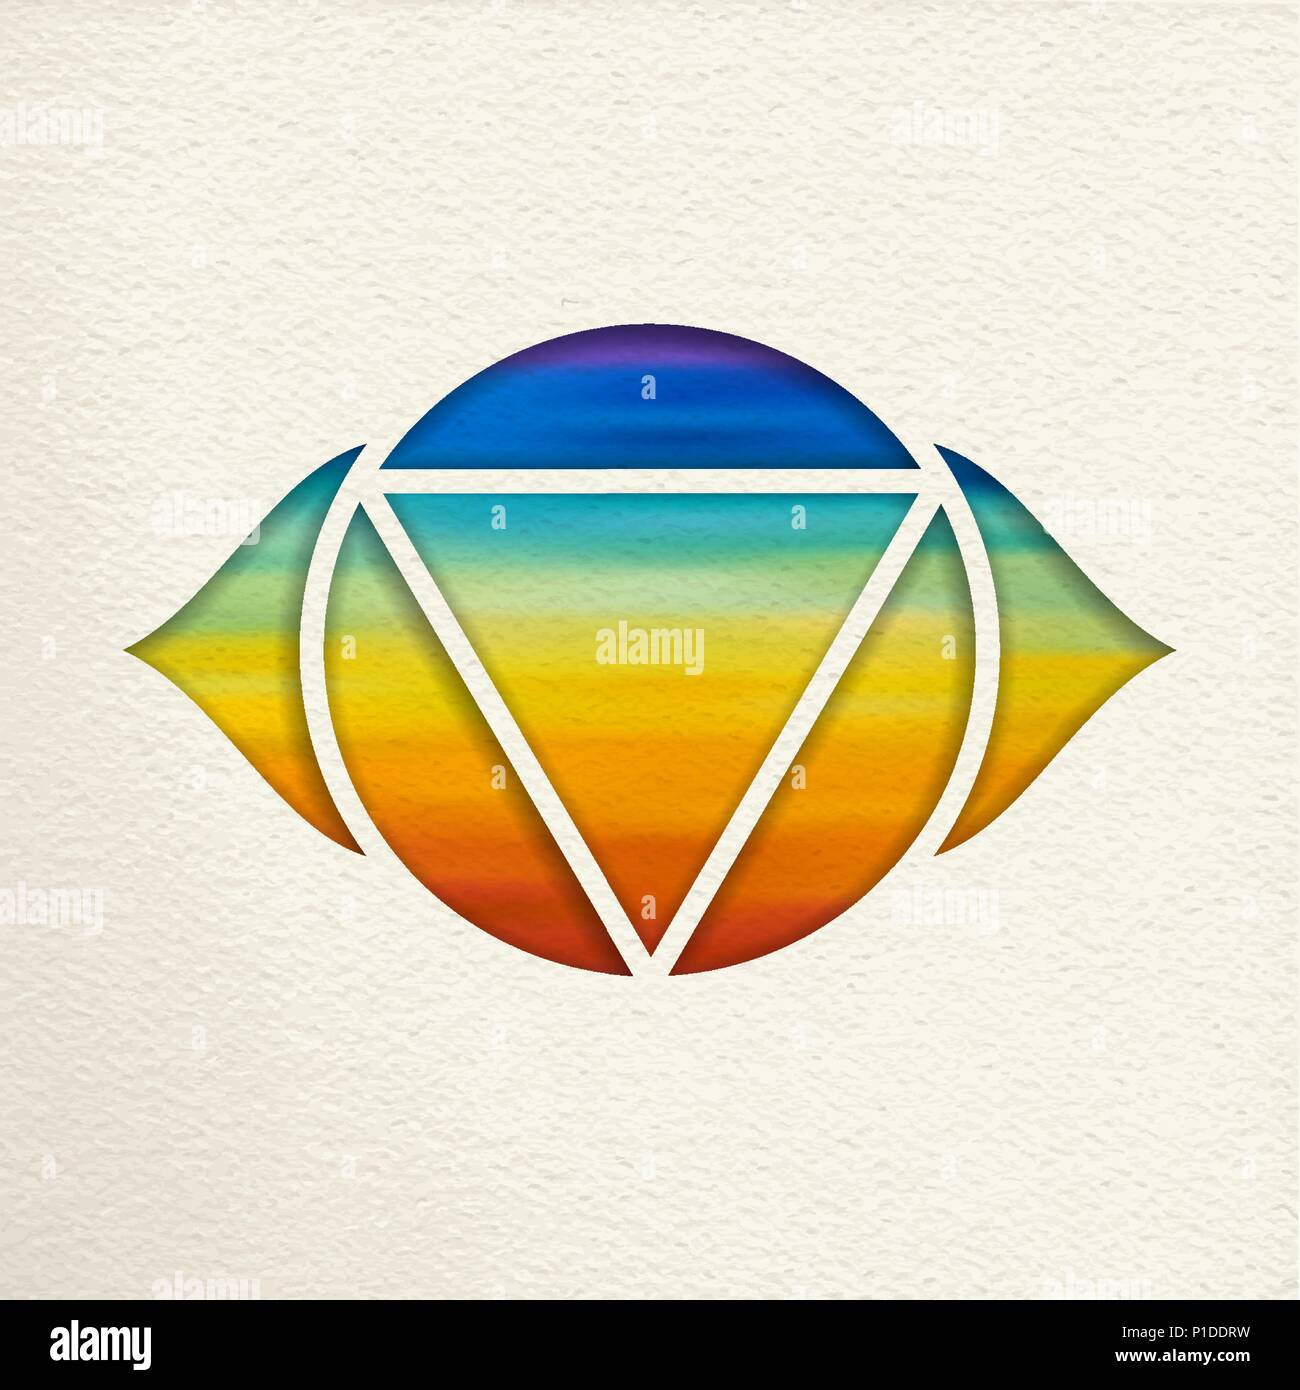 ajna 6th chakra illustration in paper cut style colorful watercolor background yoga shape of third eye eps10 vector P1DDRW third eye chakra stock vector images alamy